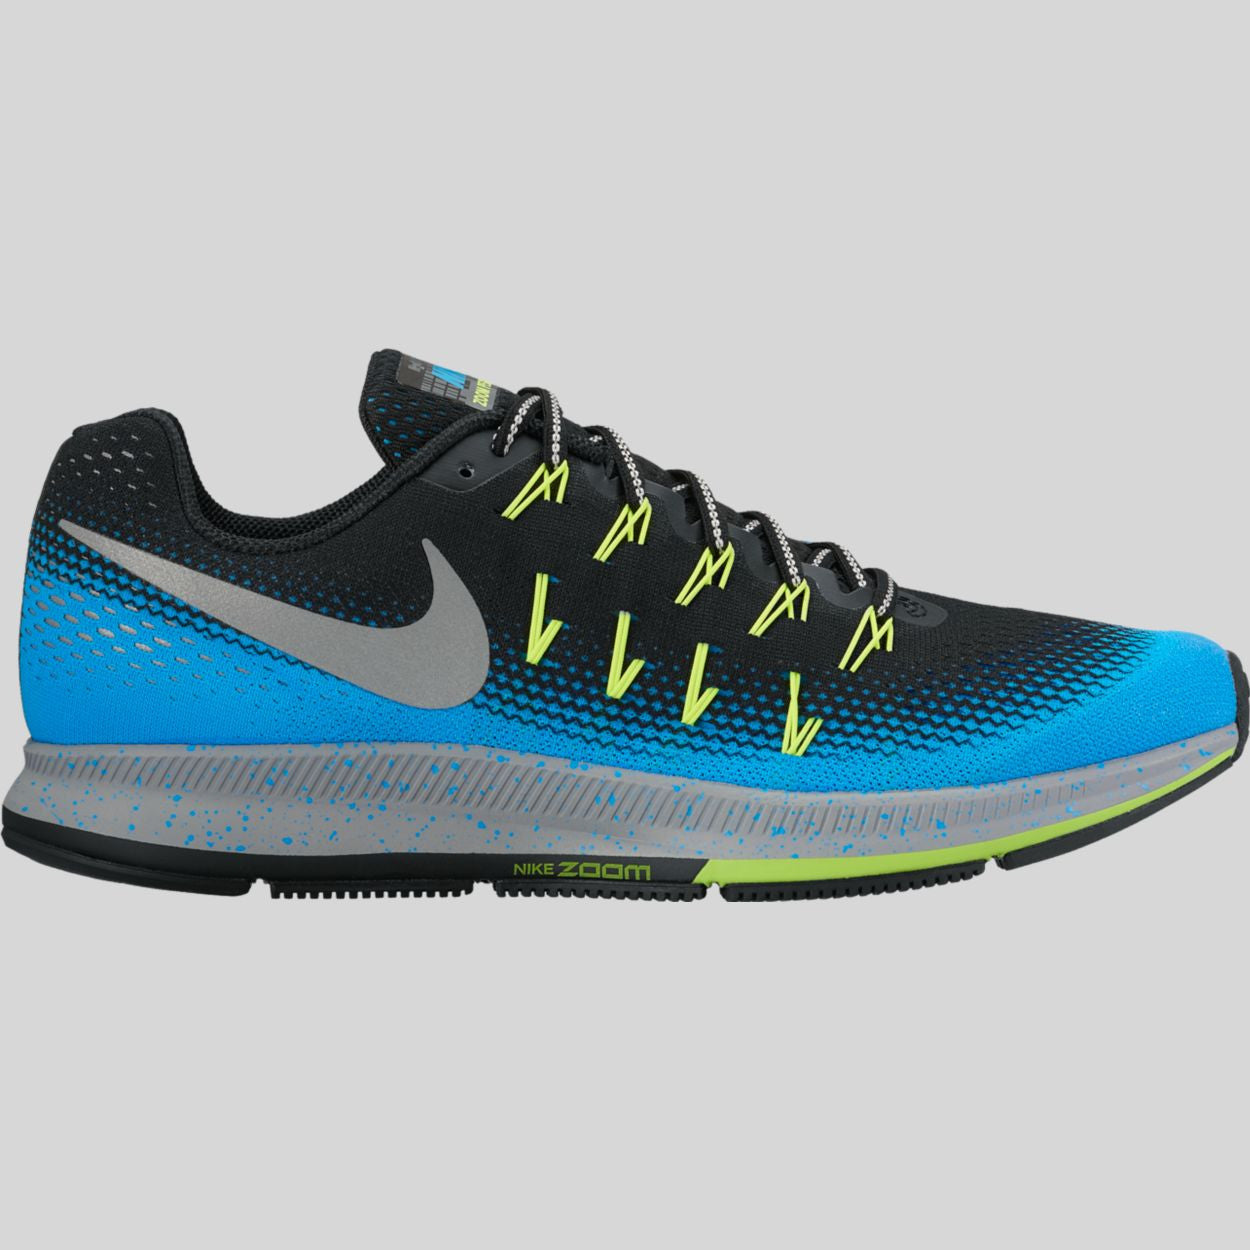 huge discount 90352 69917 Nike Air Zoom Pegasus 33 Shield Black Metallic Silver Blue Glow (849564-004)